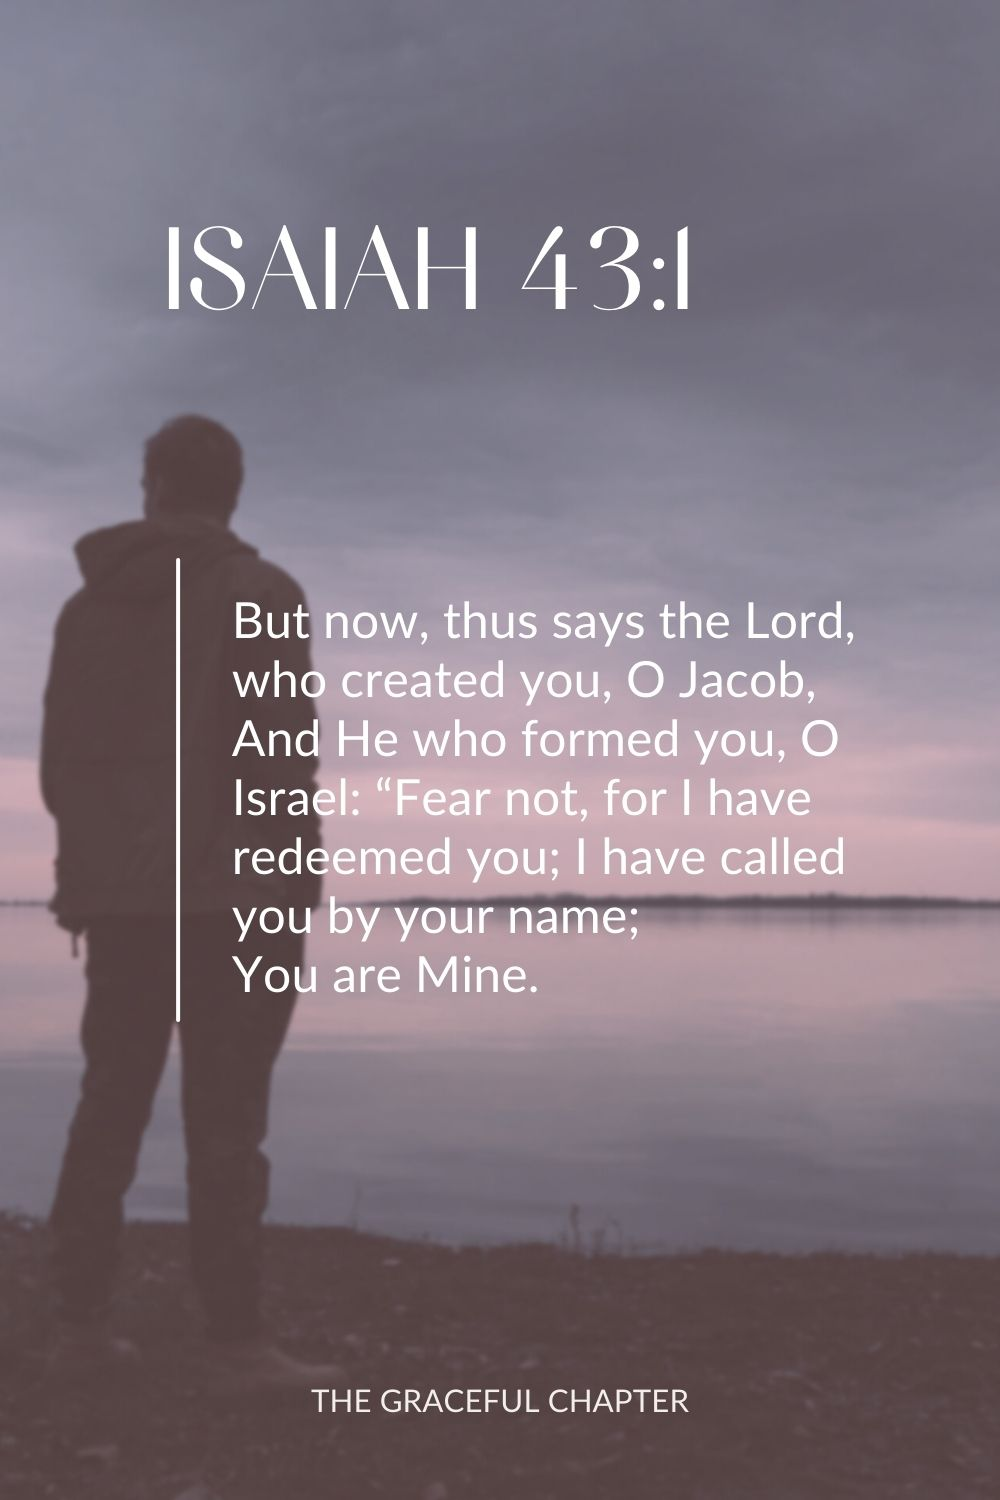 "But now, thus says the Lord, who created you, O Jacob, And He who formed you, O Israel: ""Fear not, for I have redeemed you; I have called you by your name; You are Mine. Isaiah 43:1"